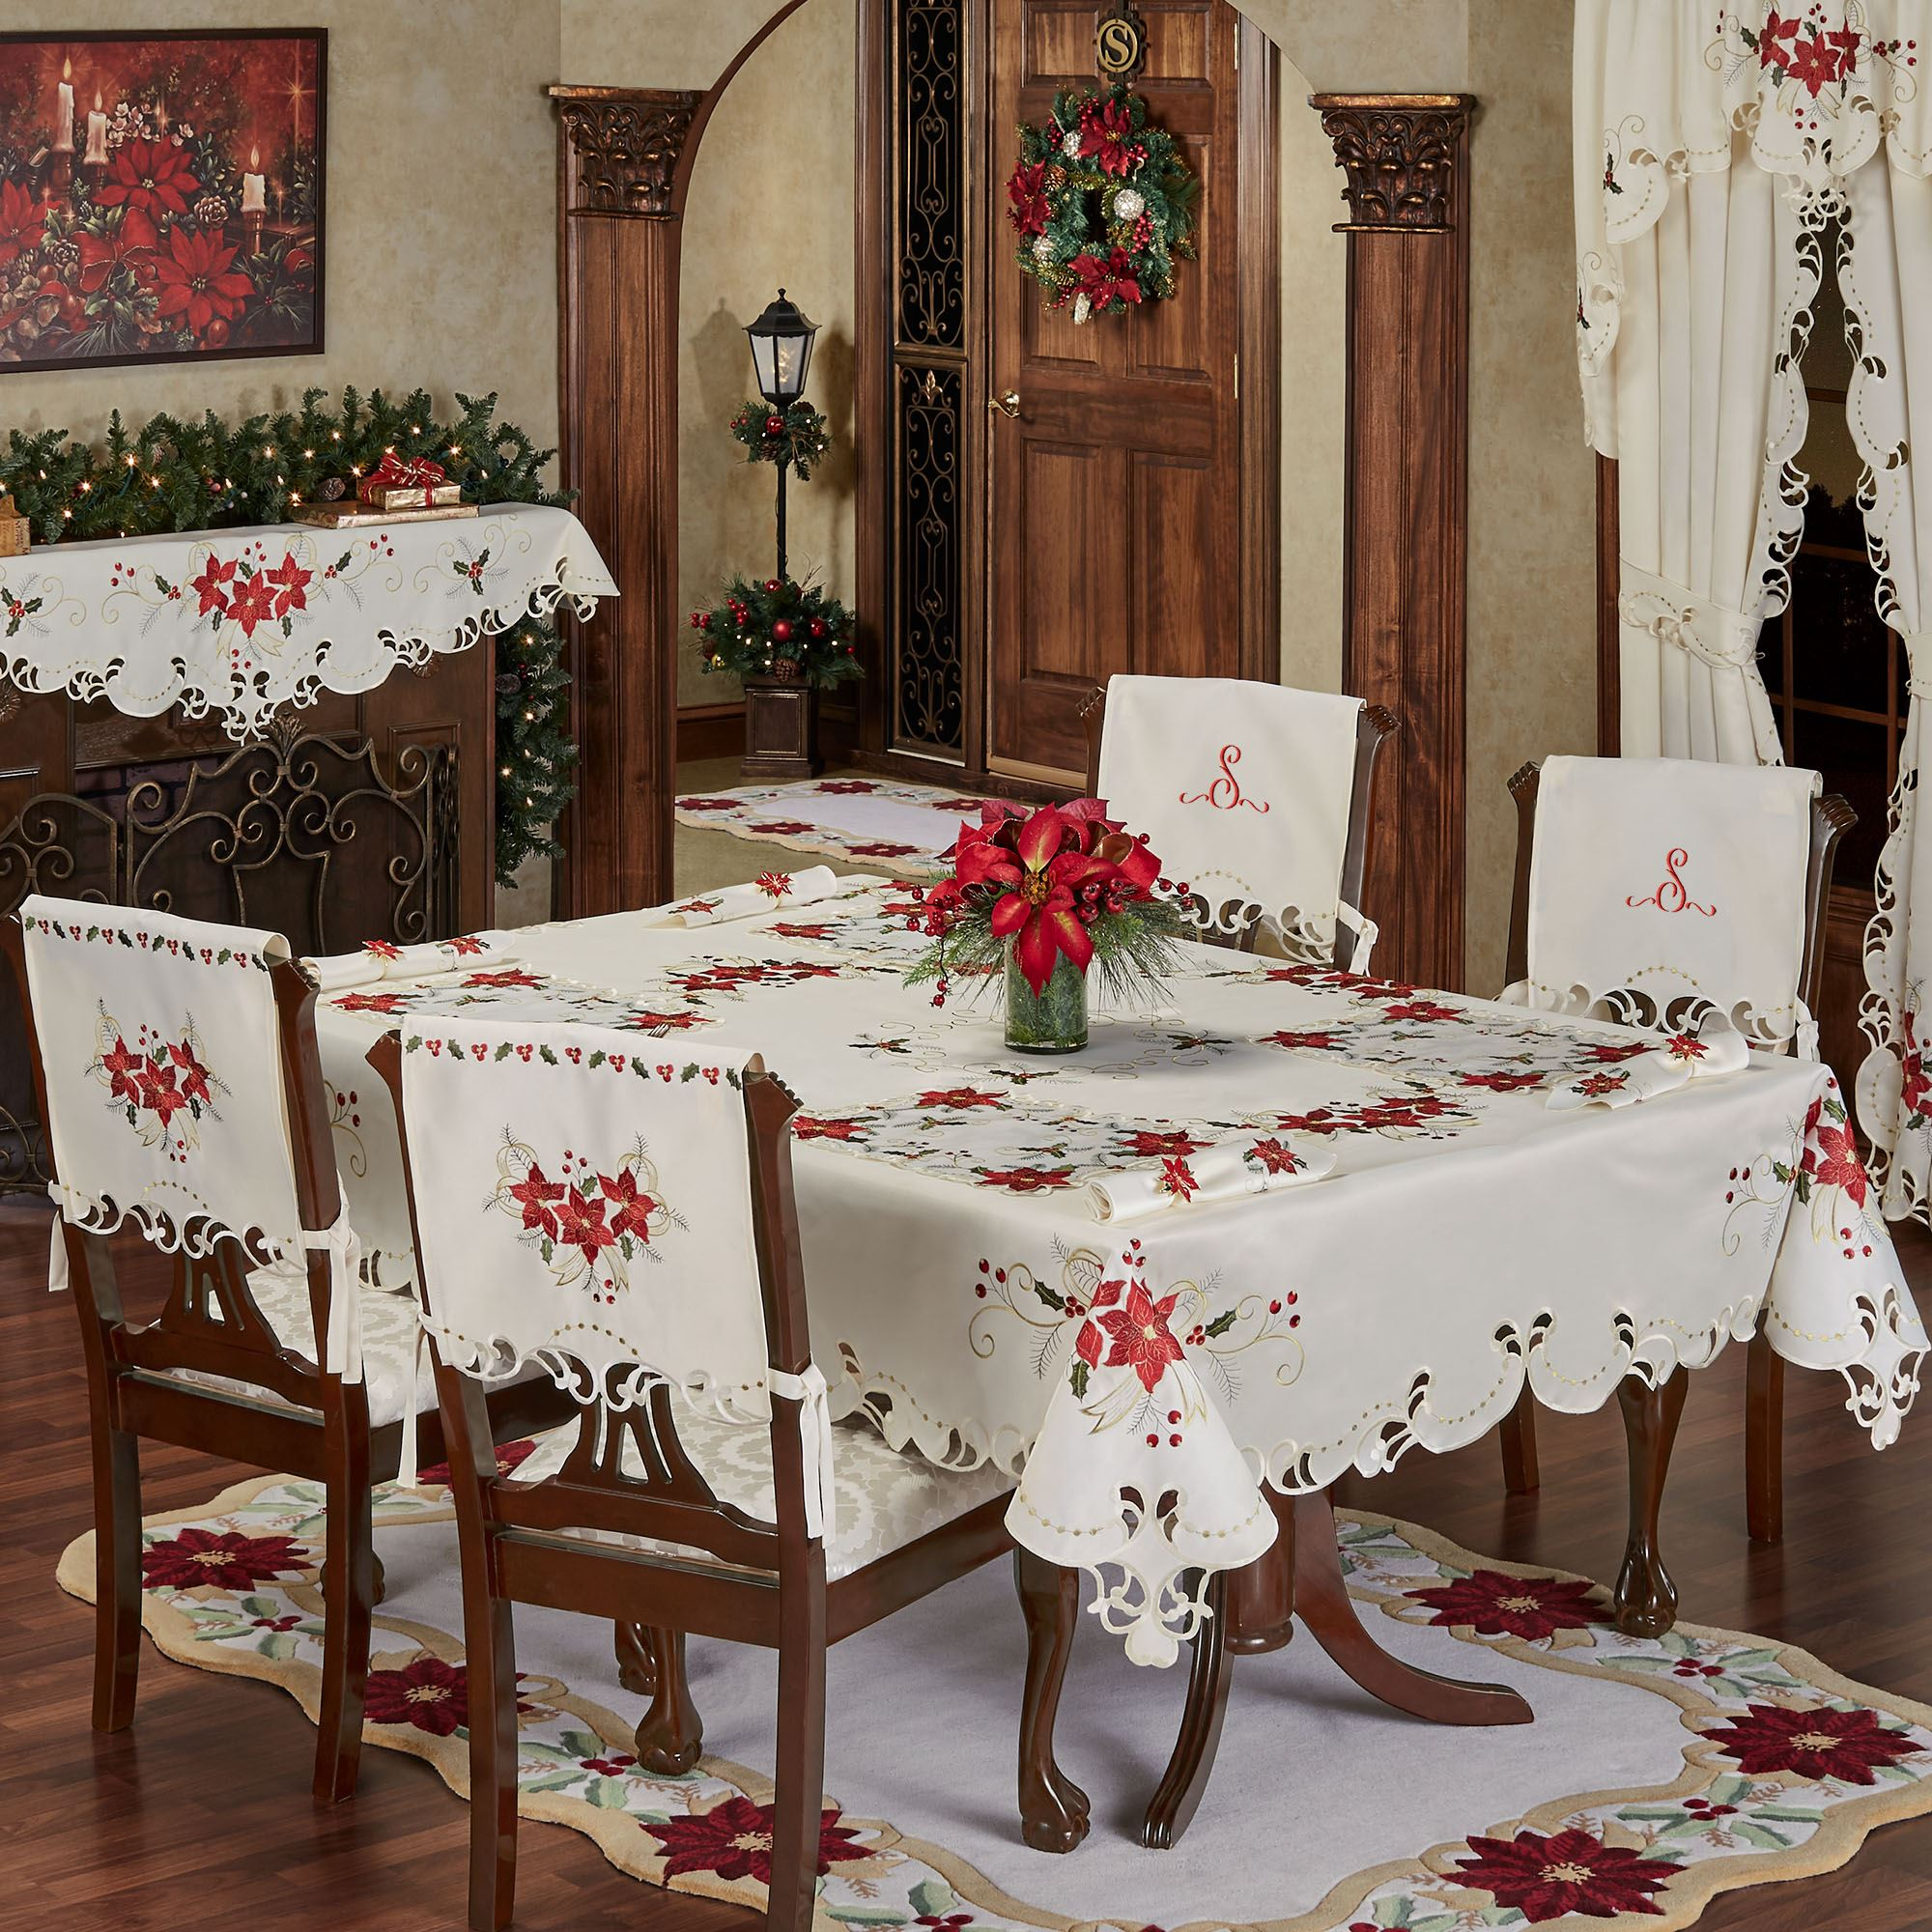 Dining Room Table Linens cool tablecloth for dining room table large size of dining room table linen ideas cloth tables cool tablecloth for dining room Poinsettia Palace Tablecloth Champagne Click To Expand